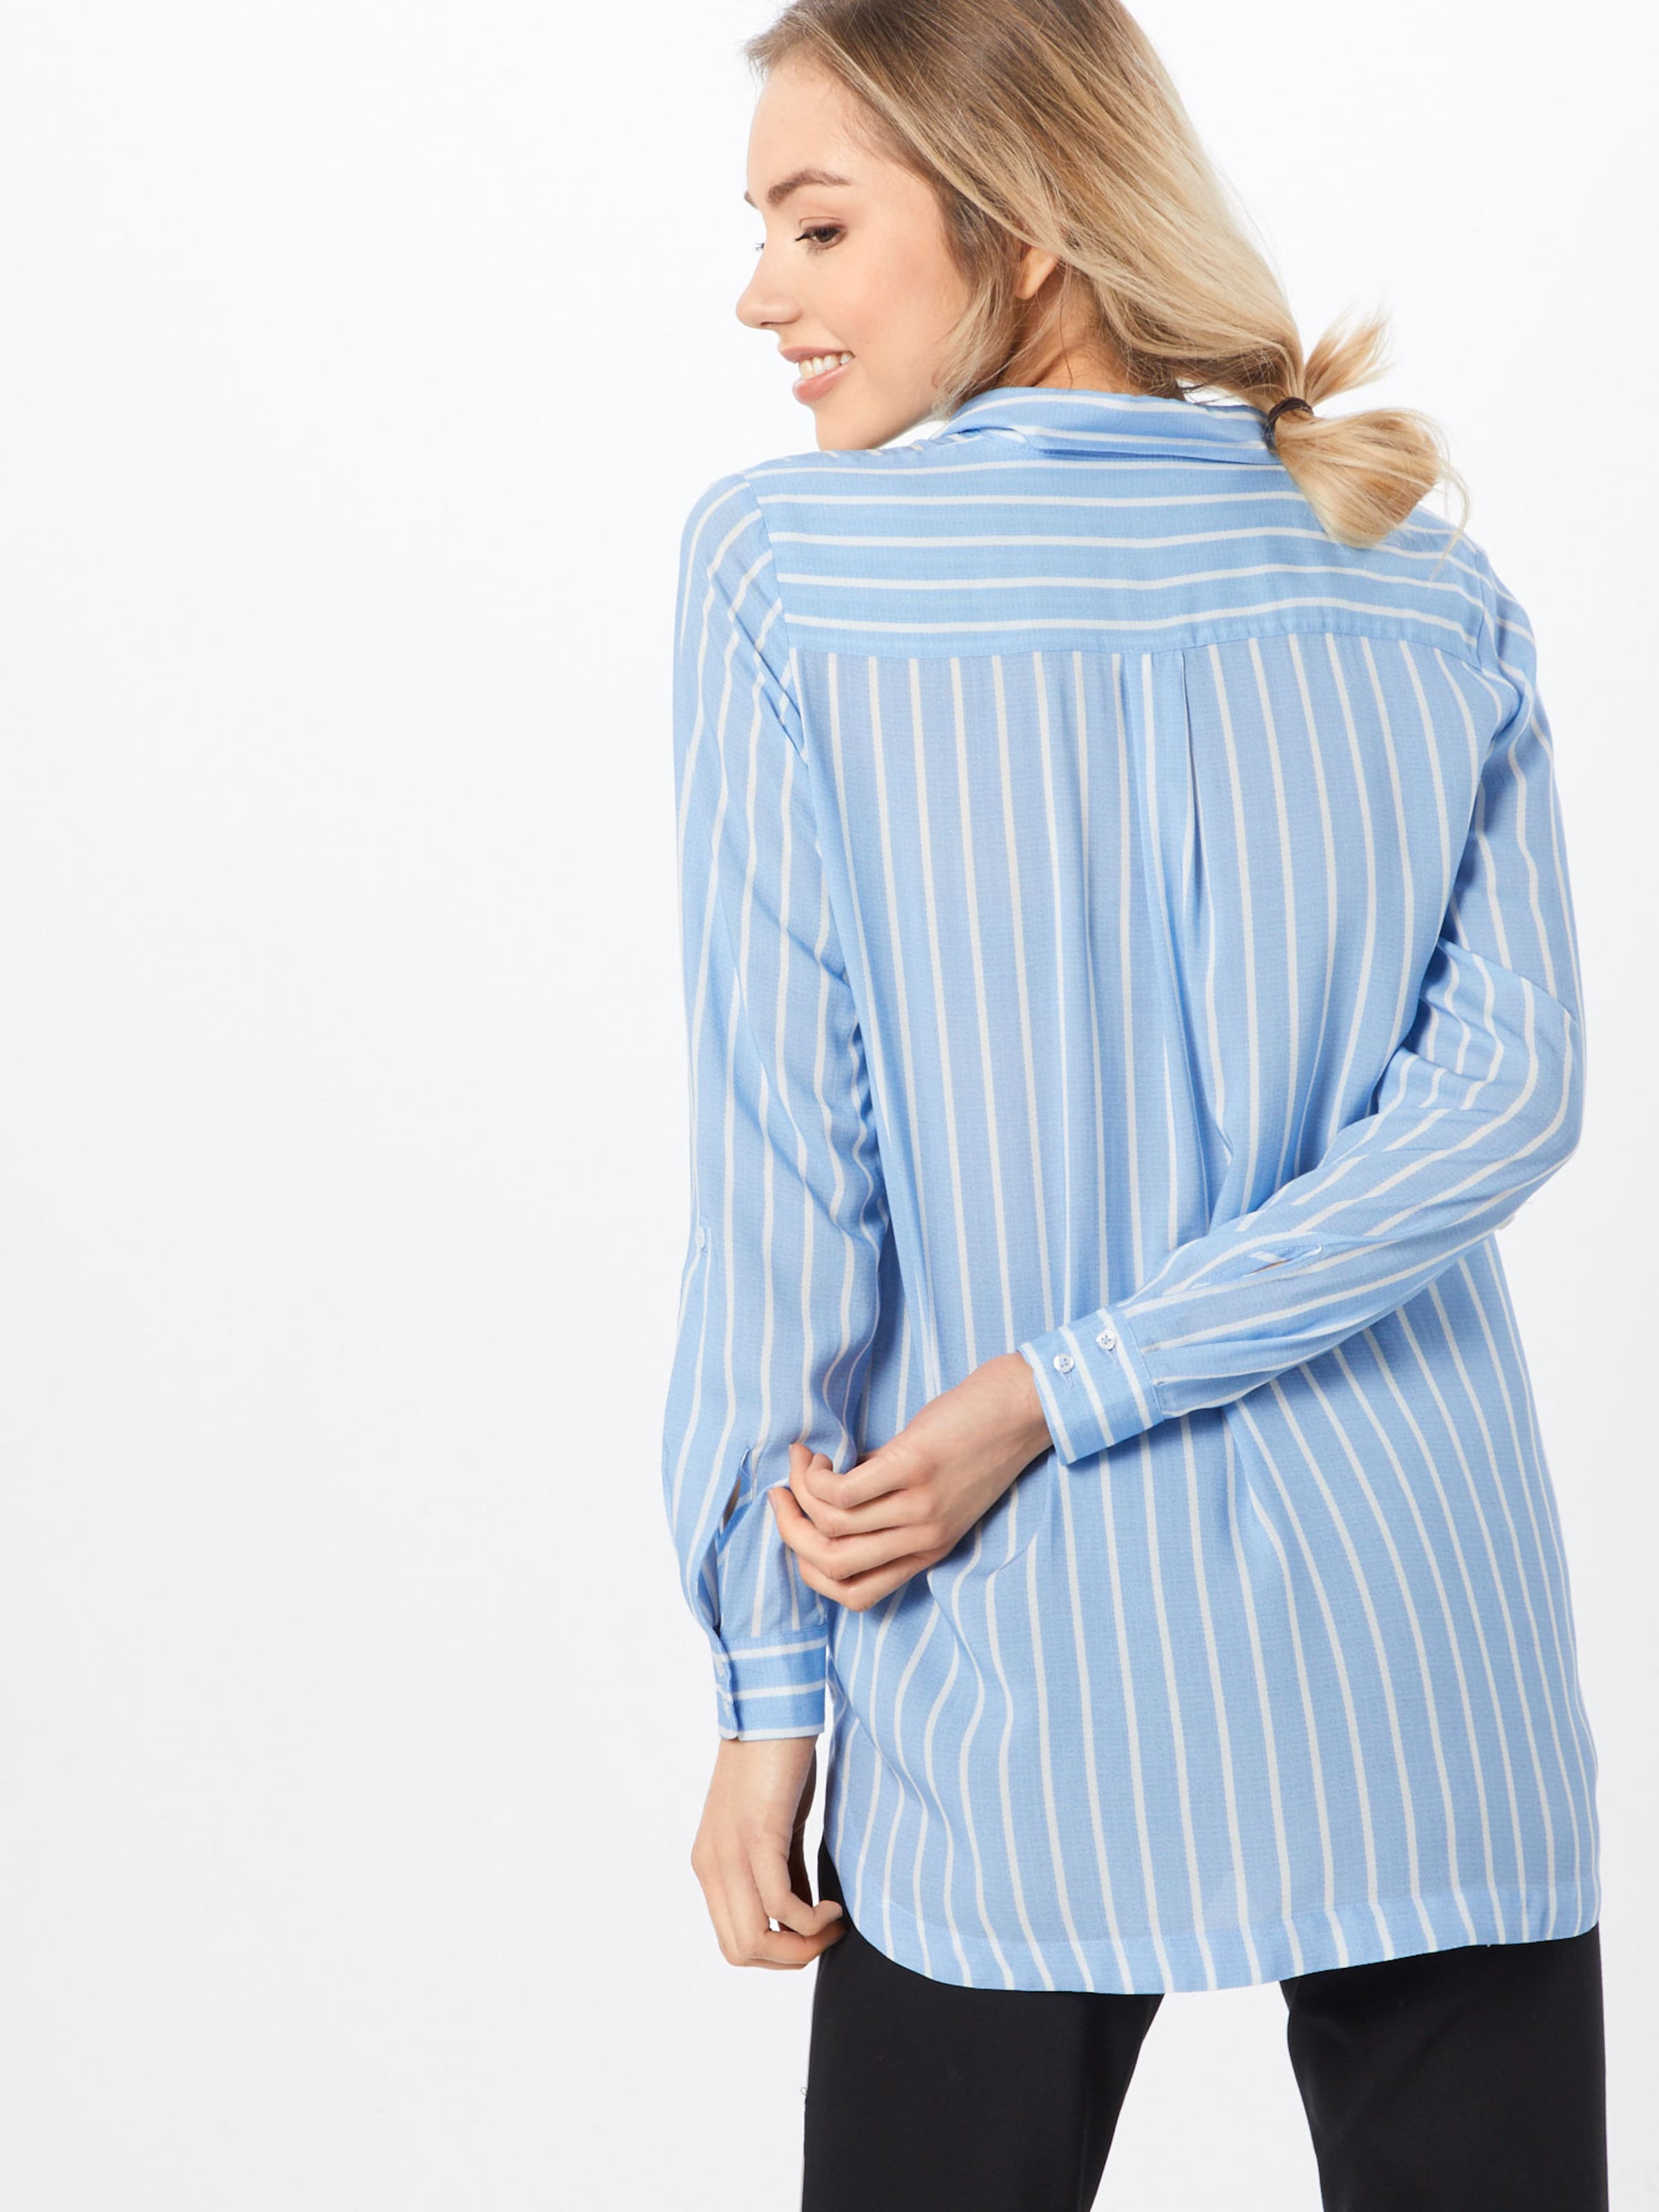 Moreamp; Bluse Moreamp; In HellblauWeiß Moreamp; HellblauWeiß In In Bluse Bluse HellblauWeiß thrCsQd